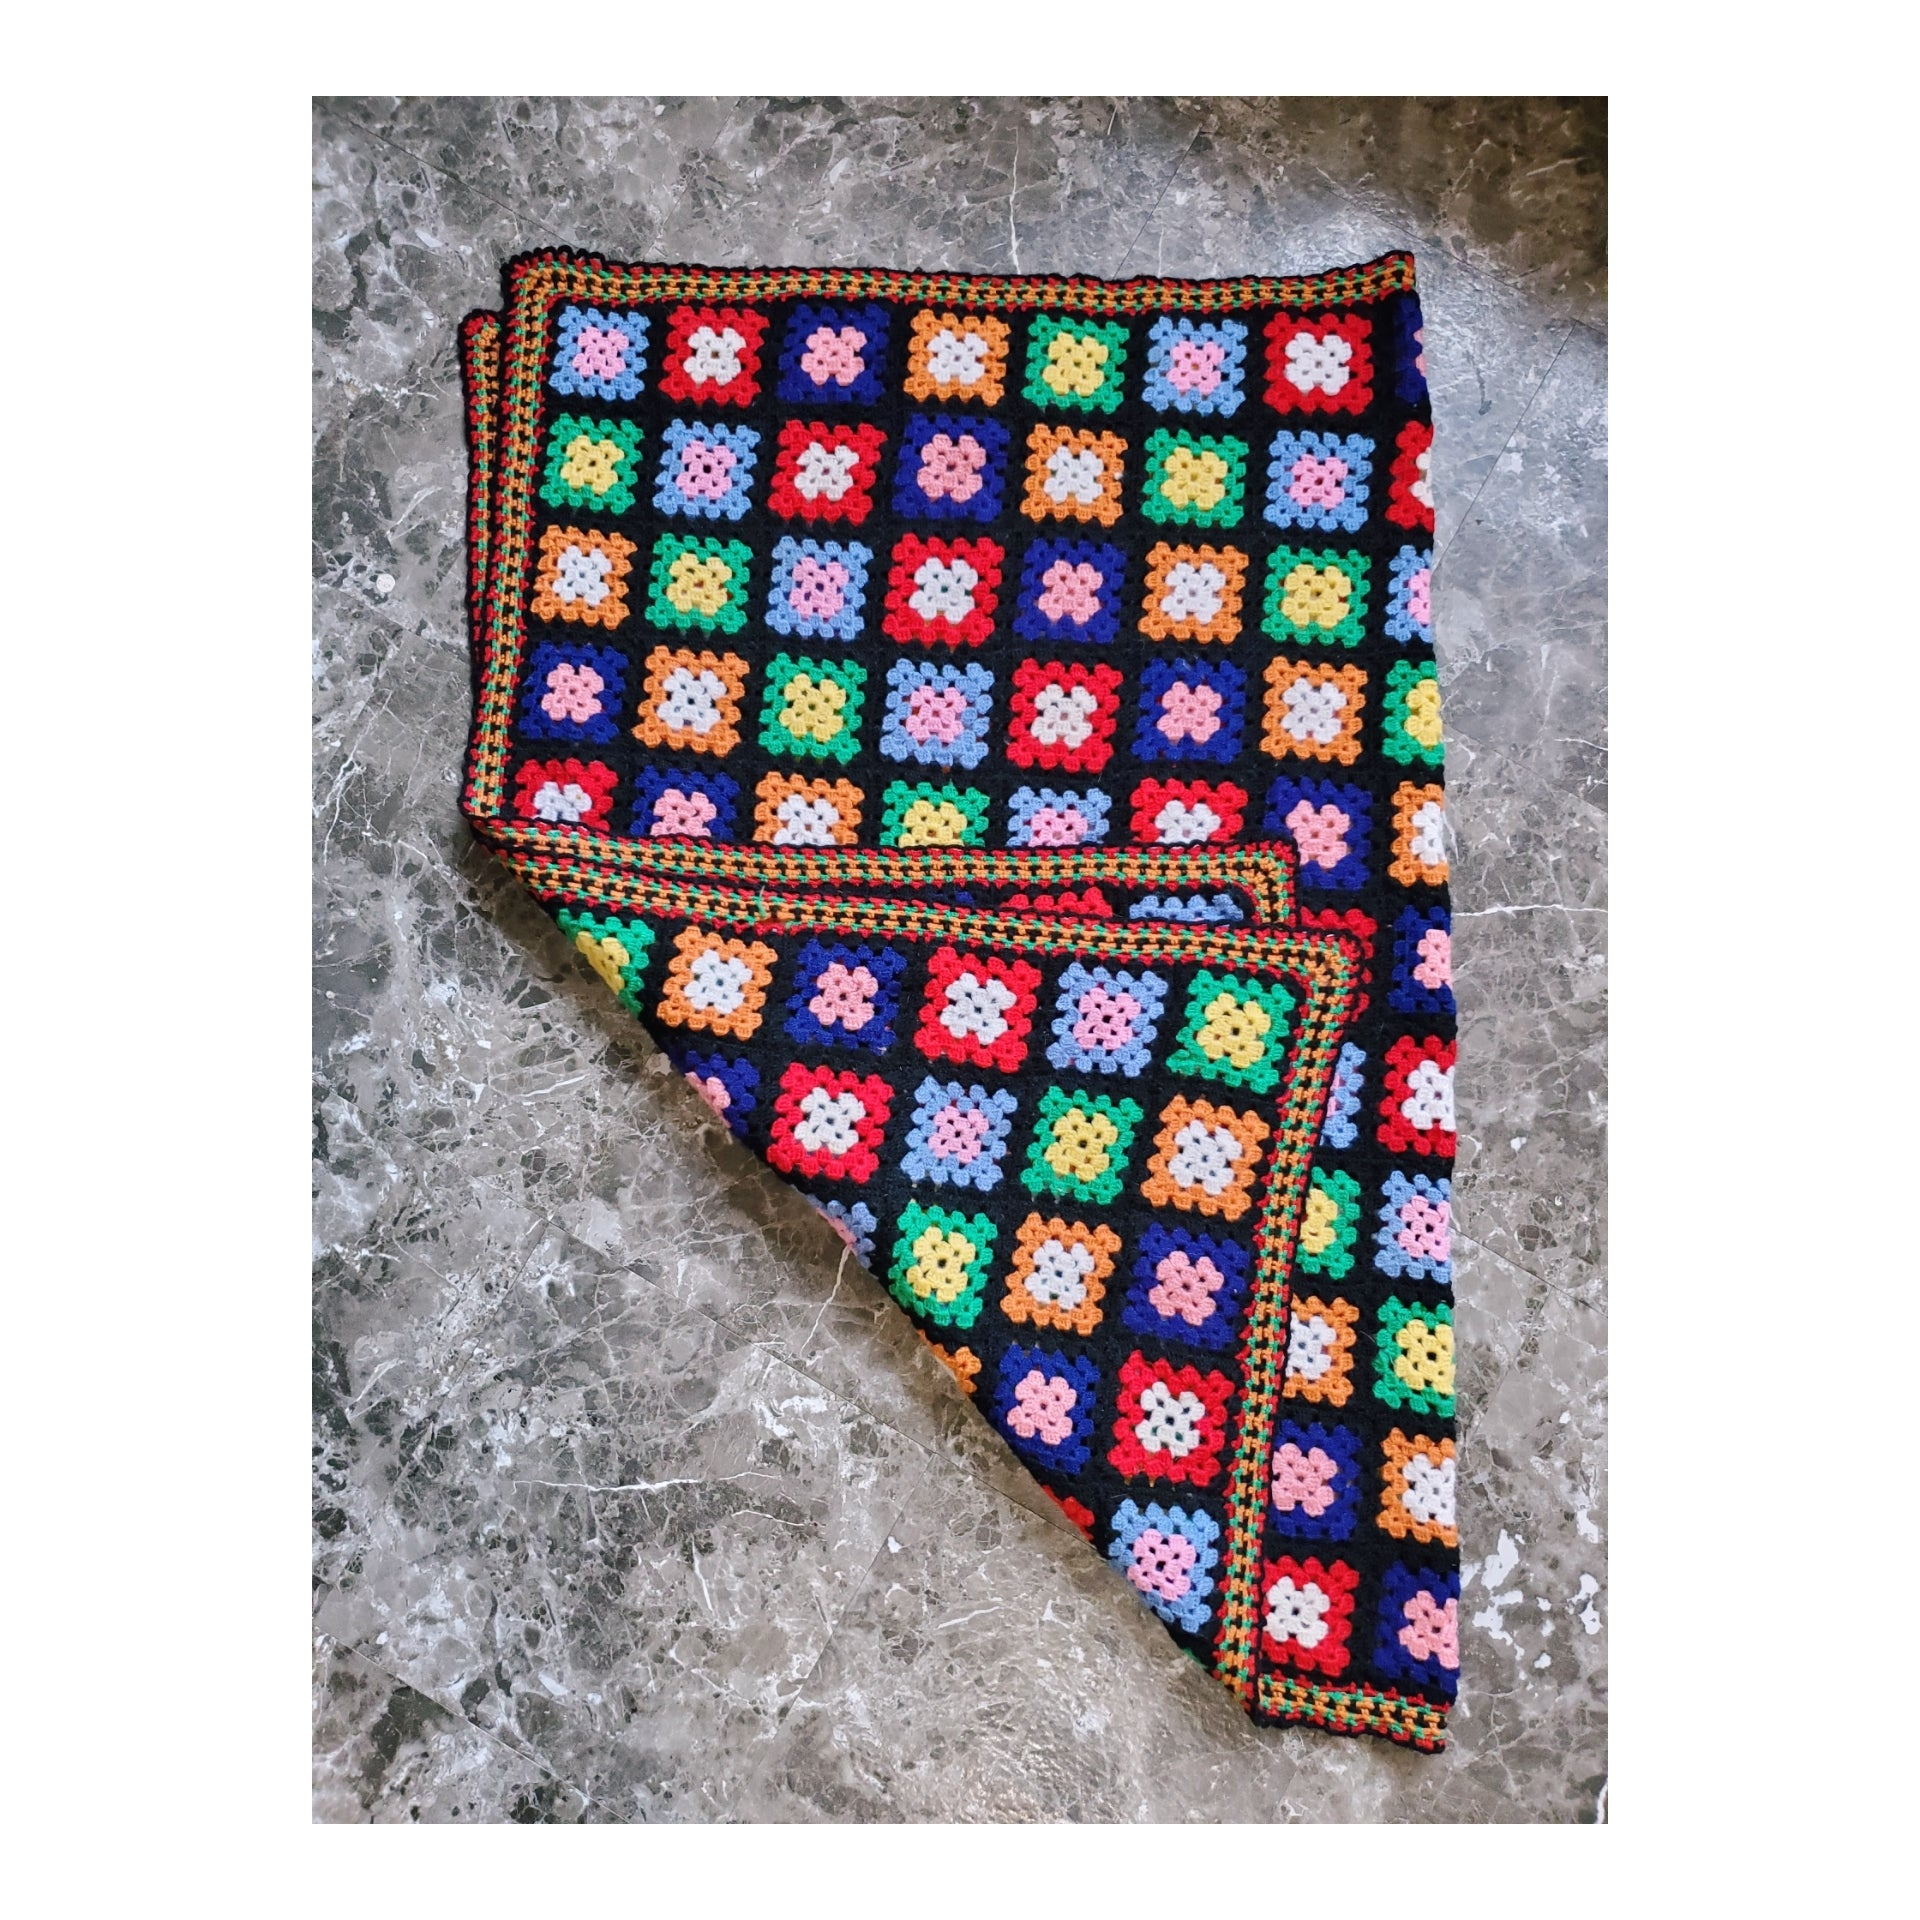 Hand-Crocheted Granny Square Blanket